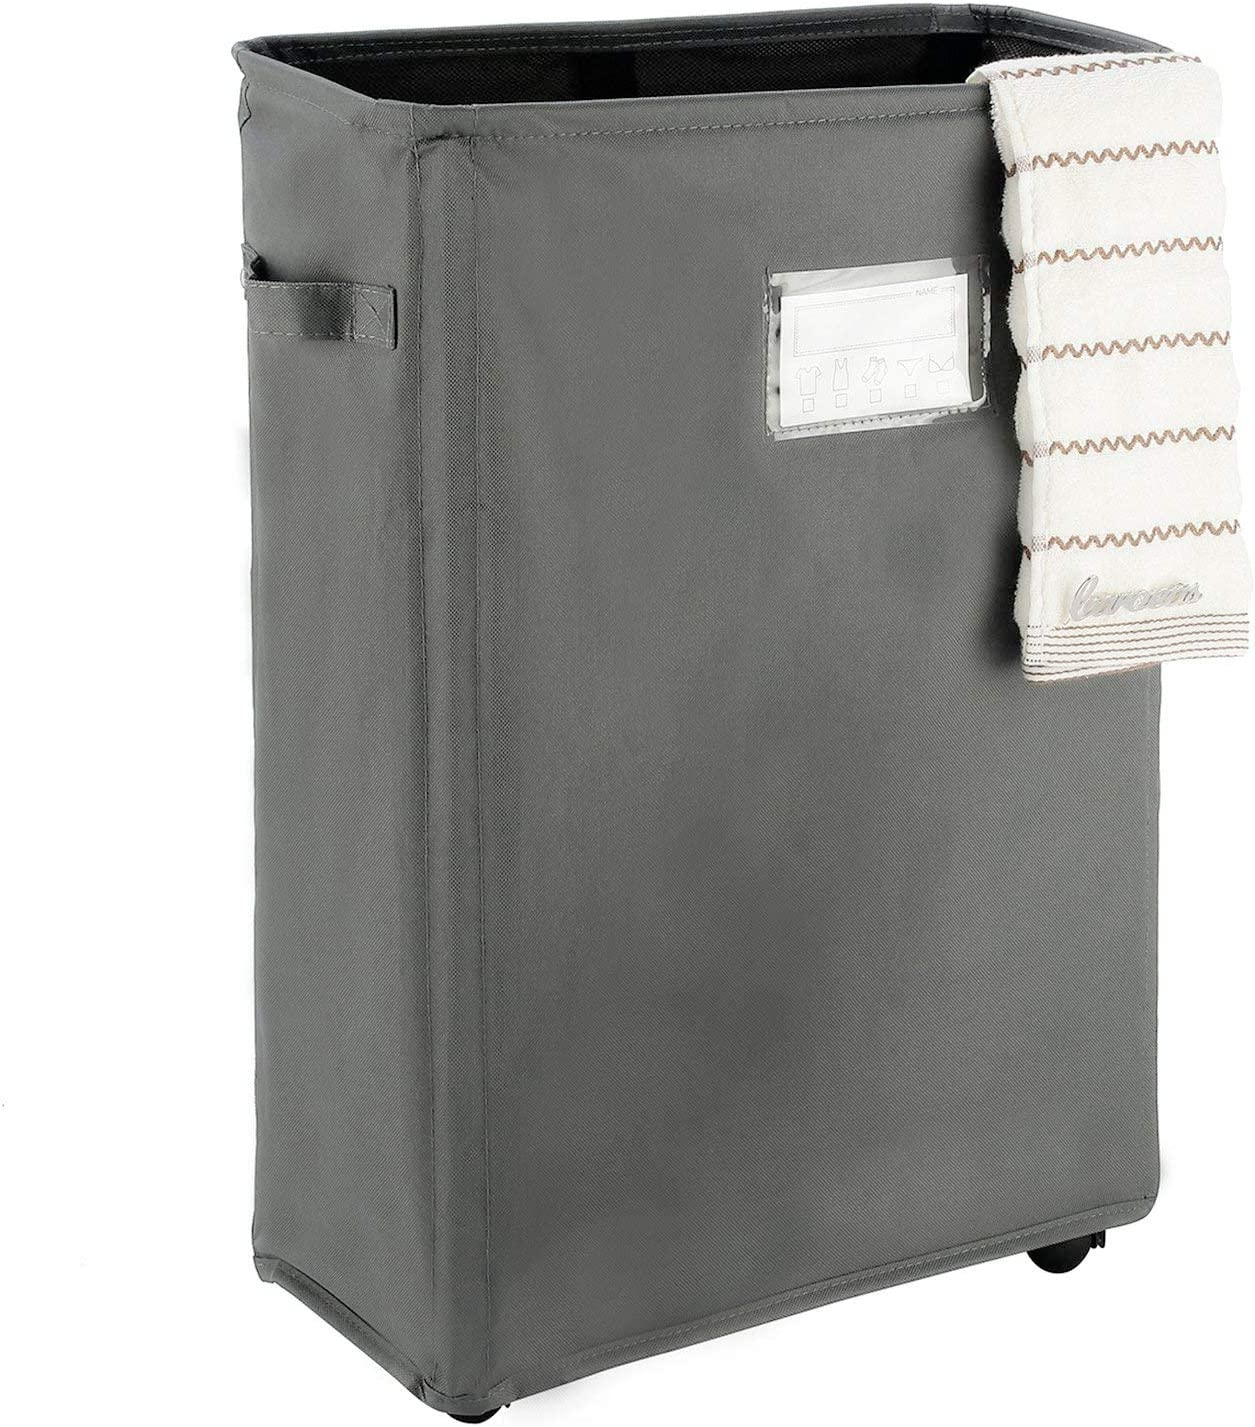 """Caroeas 22"""" Slim Rolling Laundry Basket with Card Waterproof Laundry Storage Hamper Corner Fittable Storage Bag Collapsible Rolling Hamper Flexible Laundry Bag On Wheel For Home,Office (Slim 22"""",Grey)"""